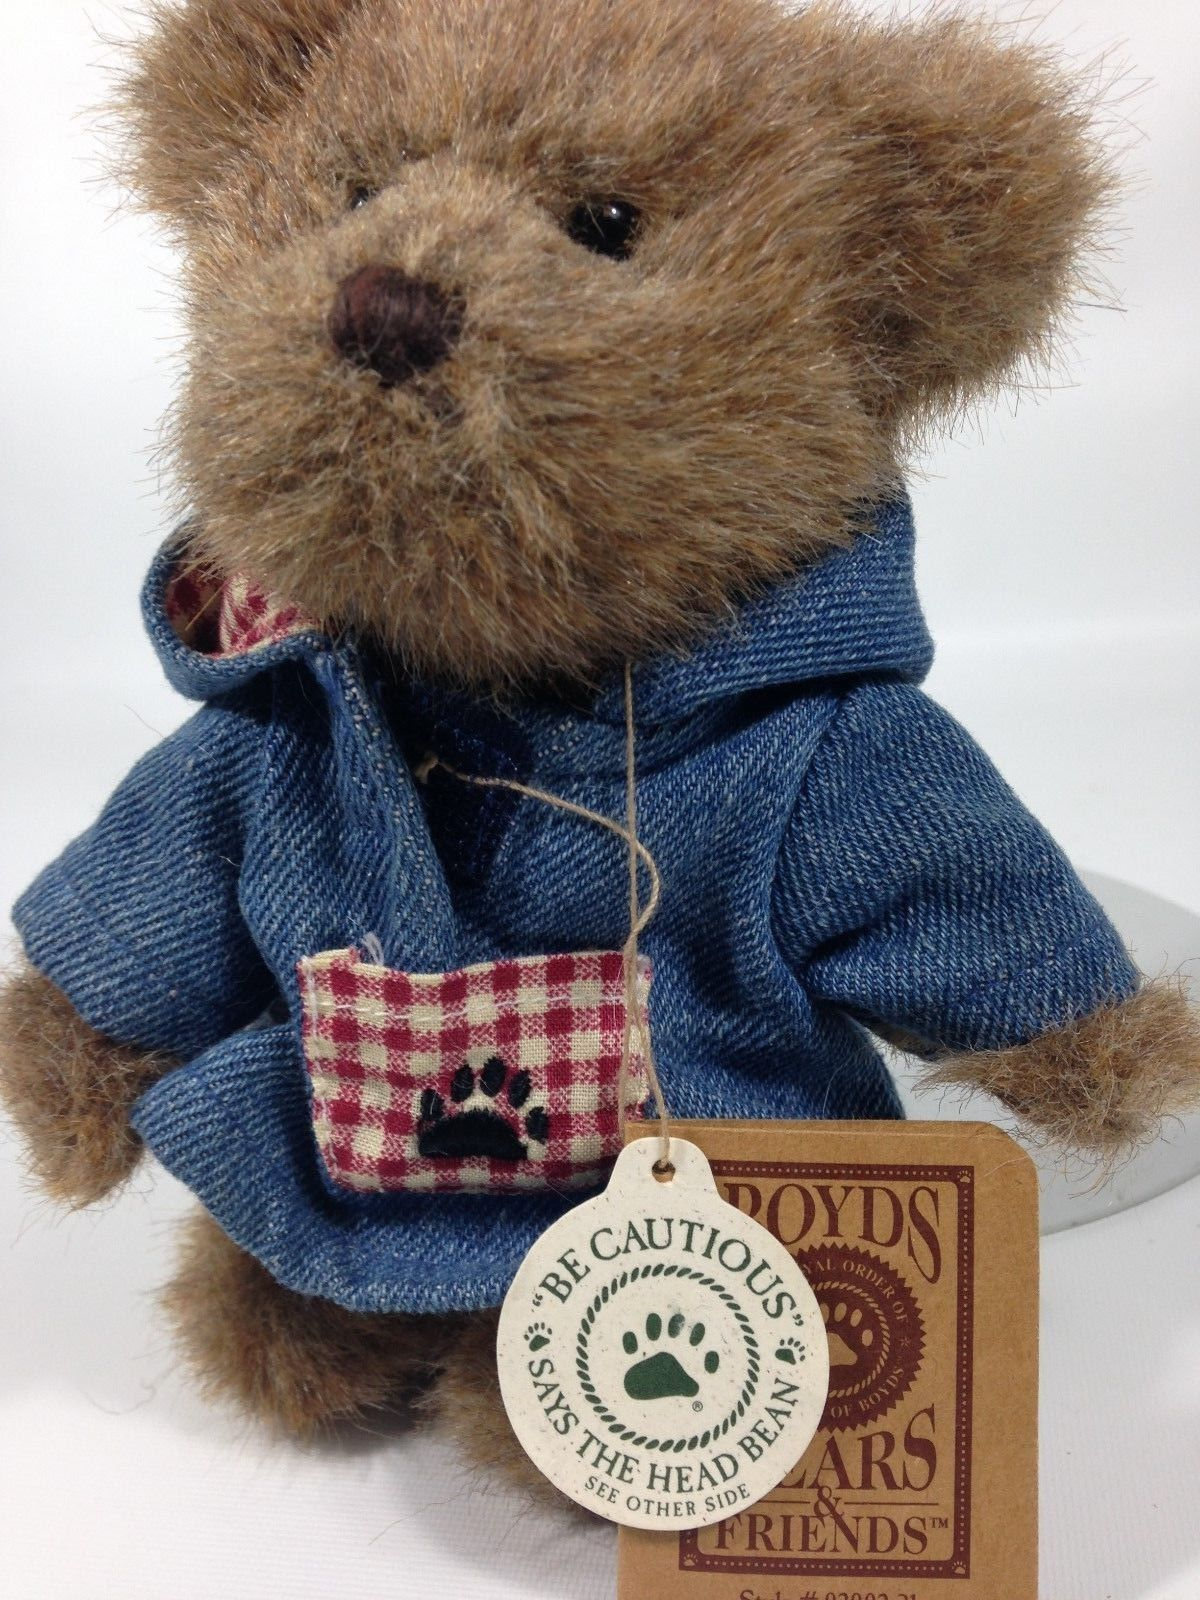 Boyds bears morgan b berriweather plush fob and similar items 2 publicscrutiny Choice Image